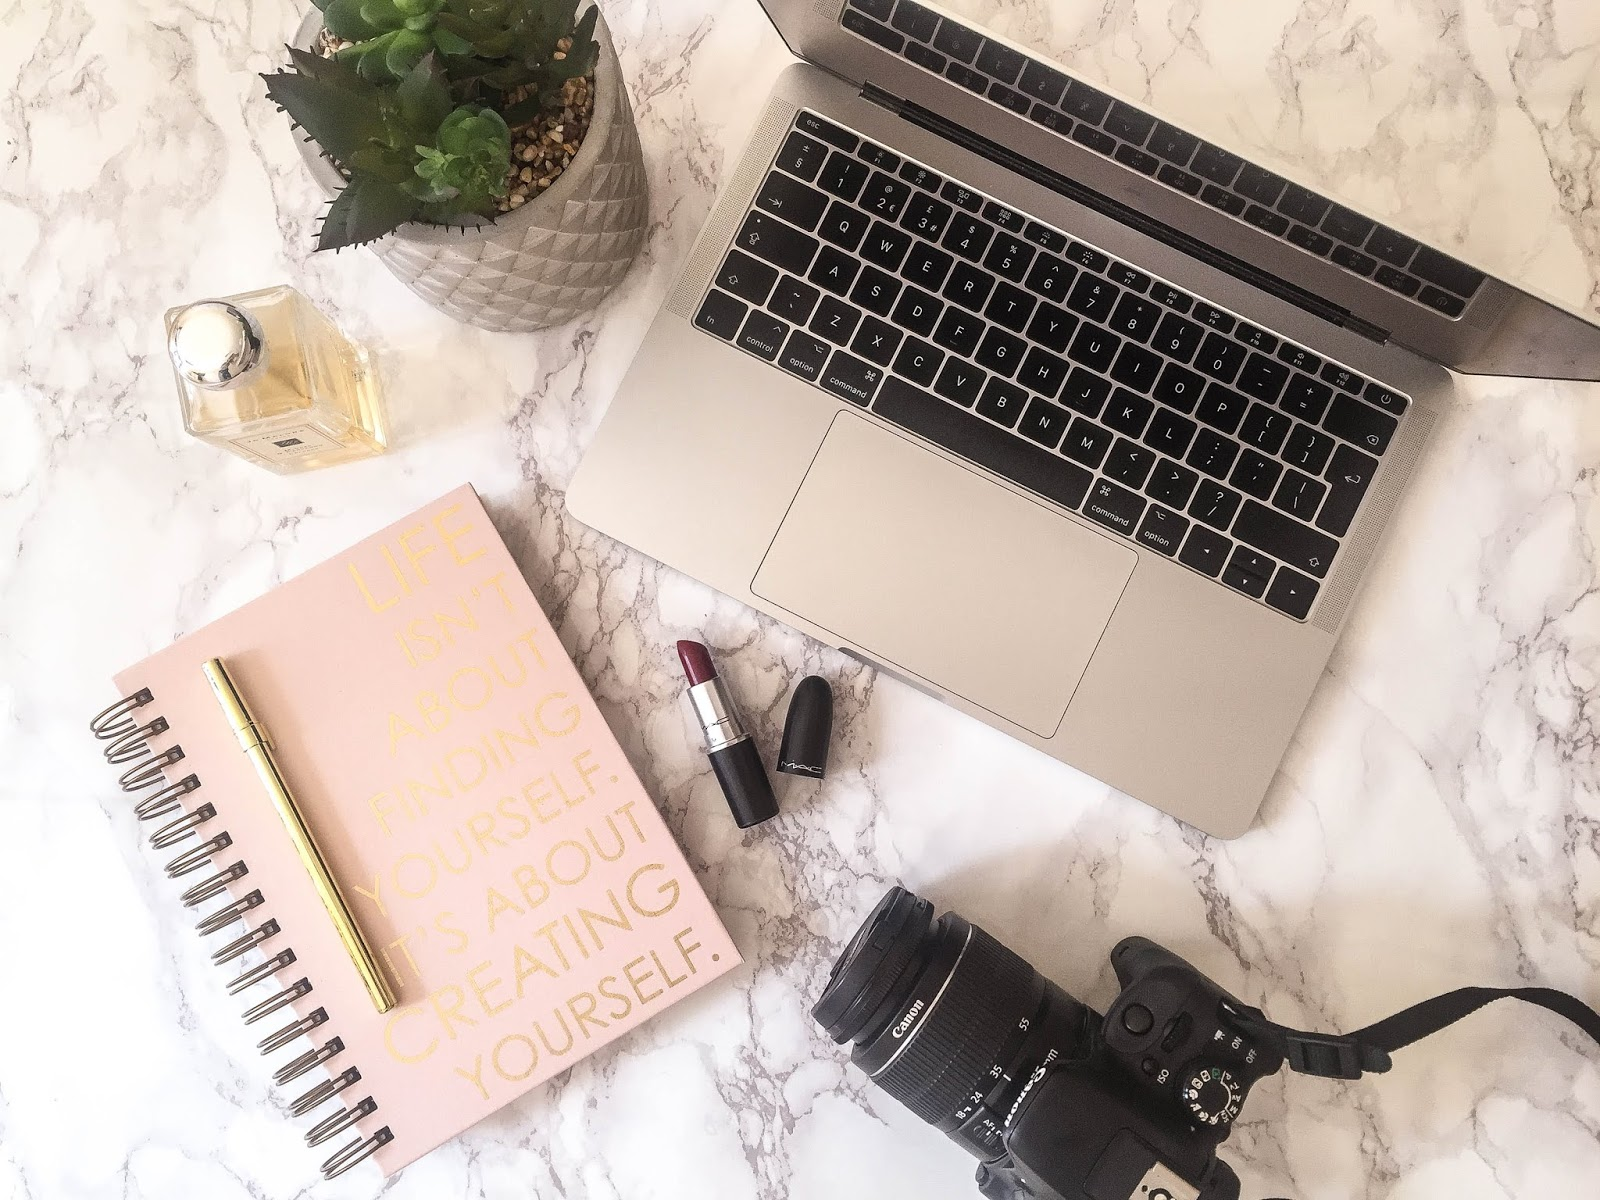 Working With Brands - A Guide For Smaller Bloggers - How To Deal With Brand/PR Emails: Part 1 - Unpaid Collaborations Blogging Advice